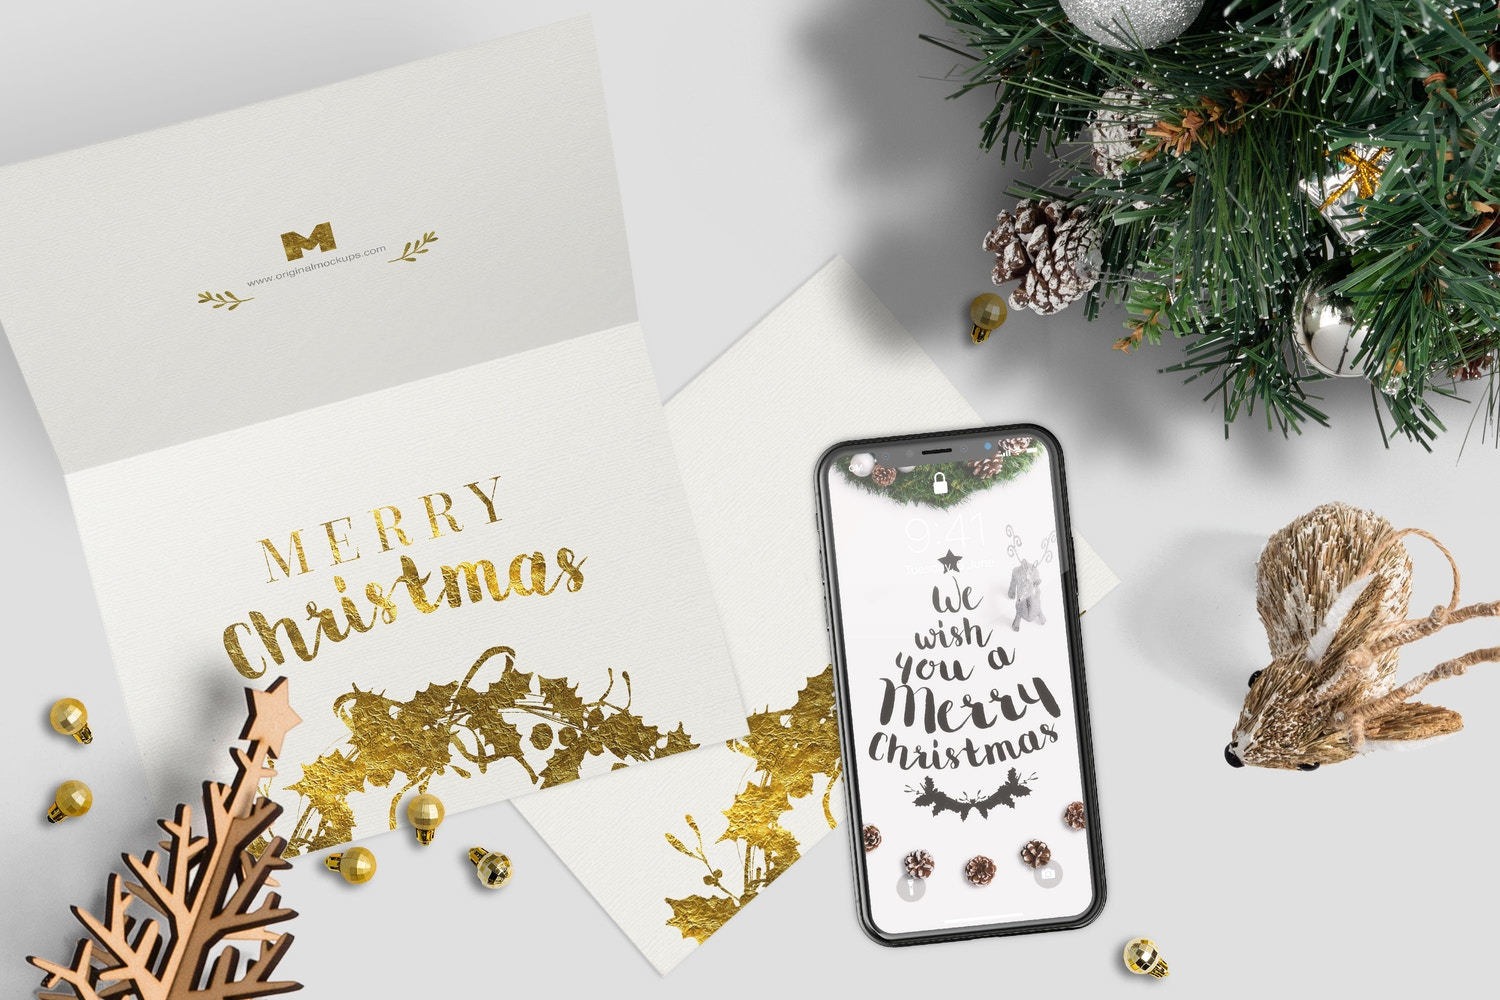 Christmas Header and Hero Scene Mockup 17 por Original Mockups en Original Mockups